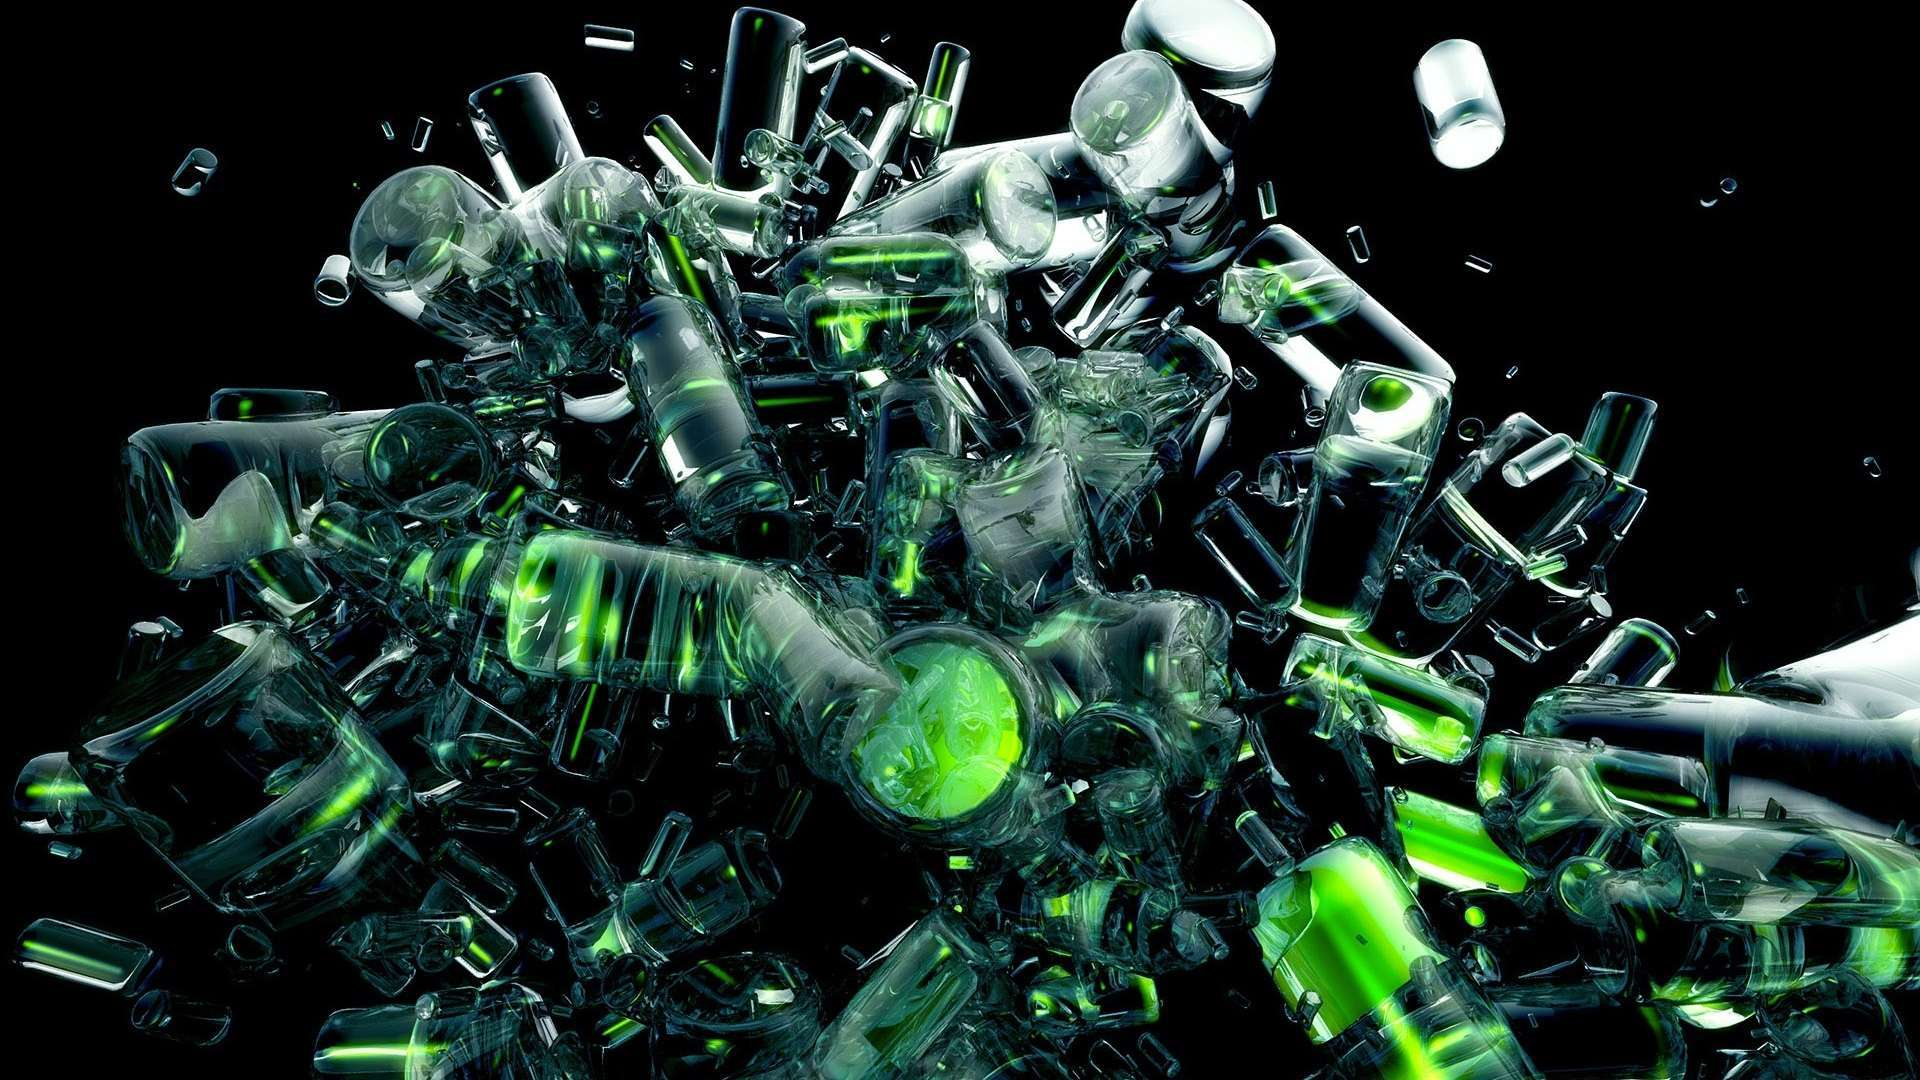 bottles explosion glass hd wallpaper 1080p is a fantastic hd 1920x1080